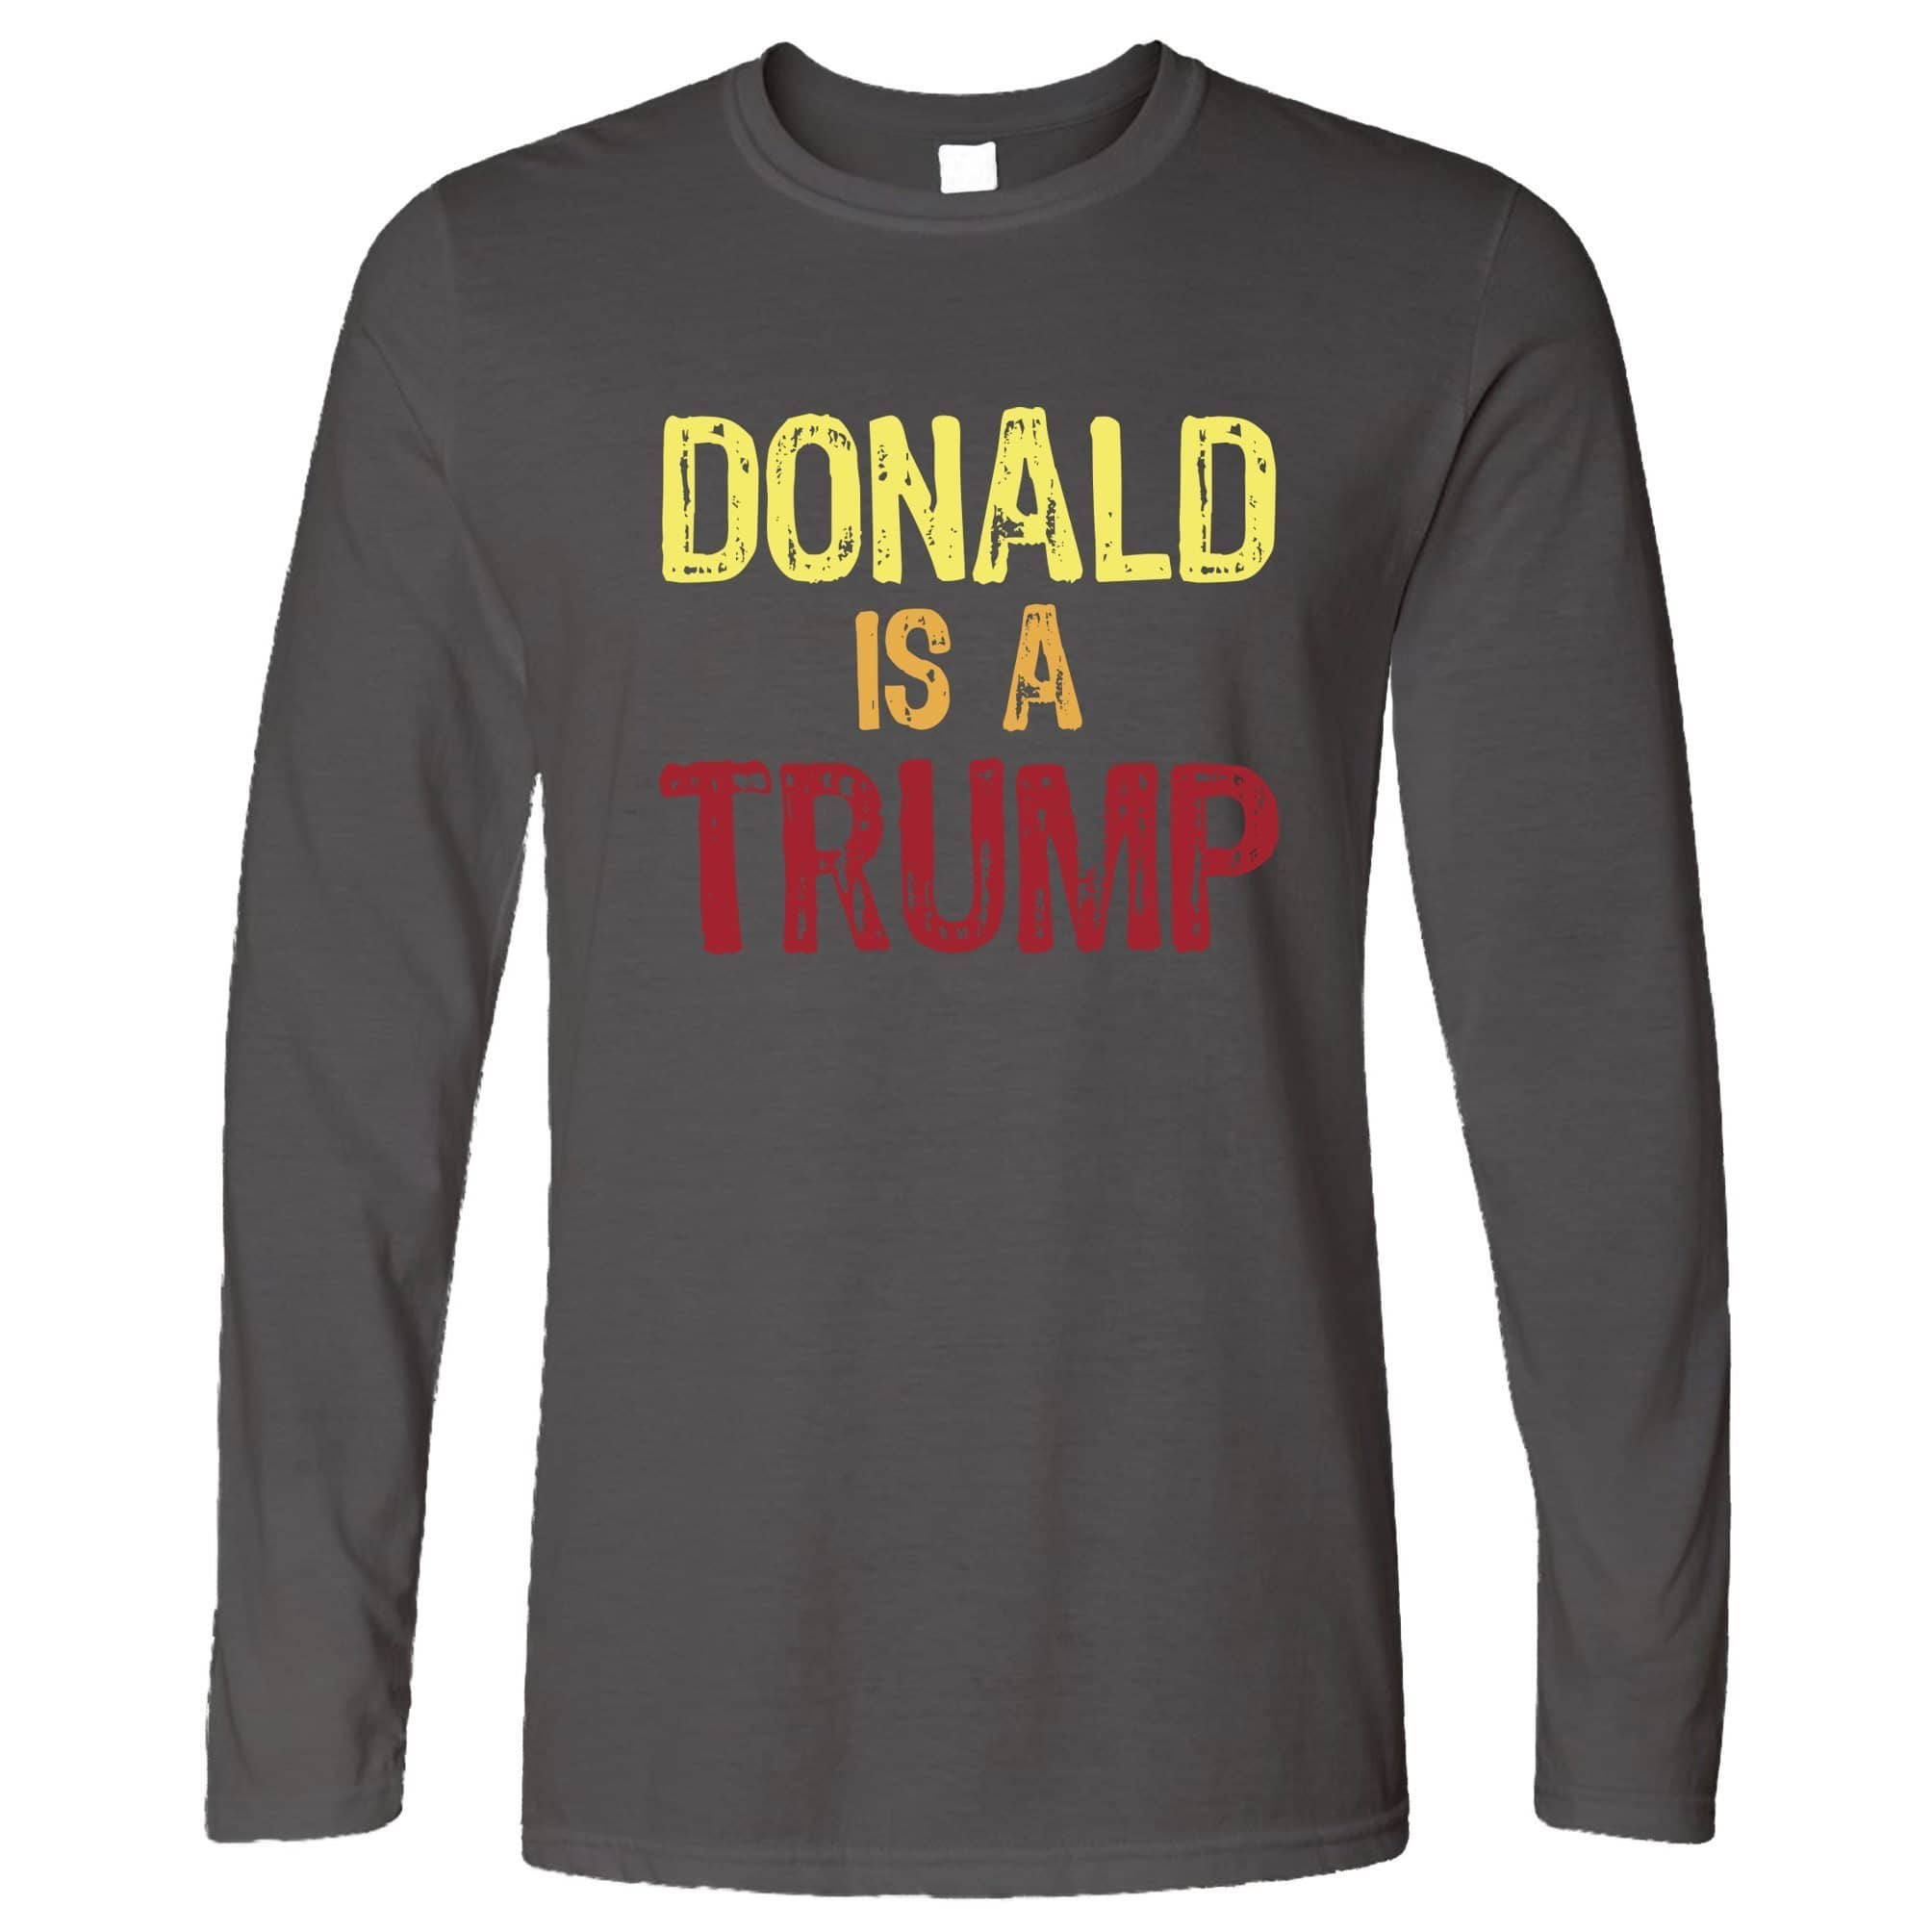 Donald Trump Long Sleeve American President Slogan T-Shirt